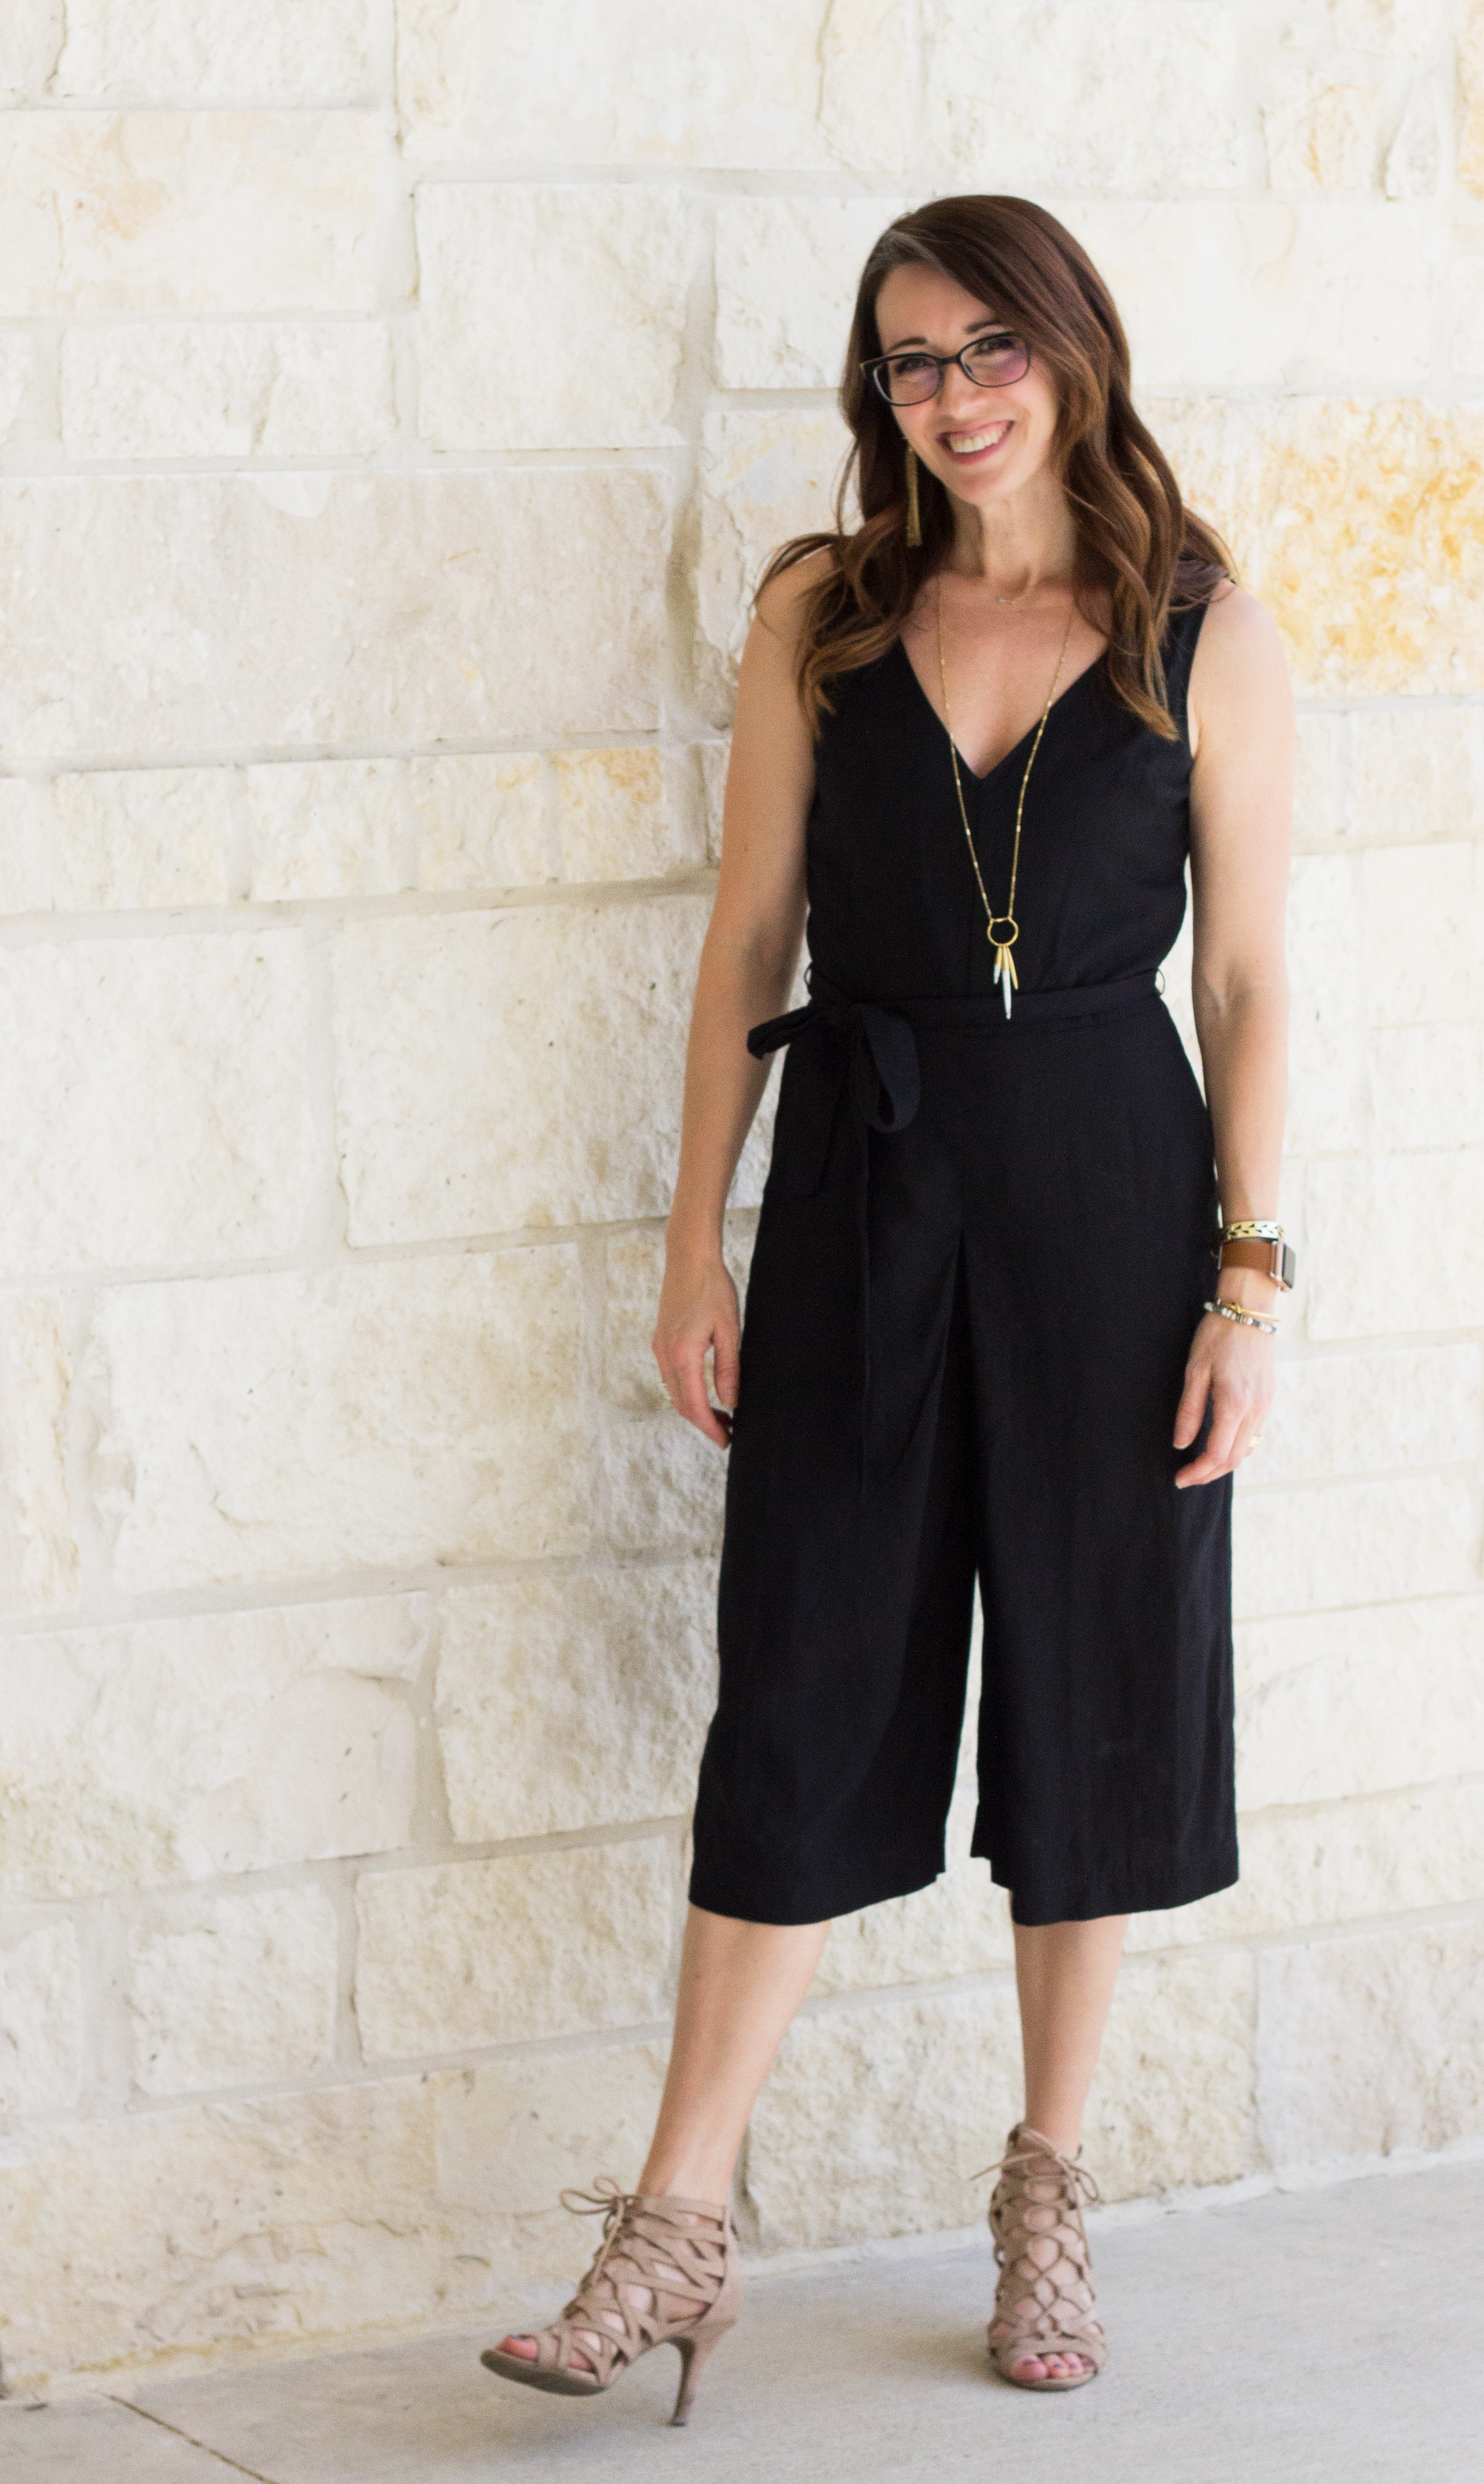 jumpsuit, black, one piece, method39, get dressed, easy, wardrobe stylist, personal stylist, find your style, as seen on me, spring style, mom style, everyday style